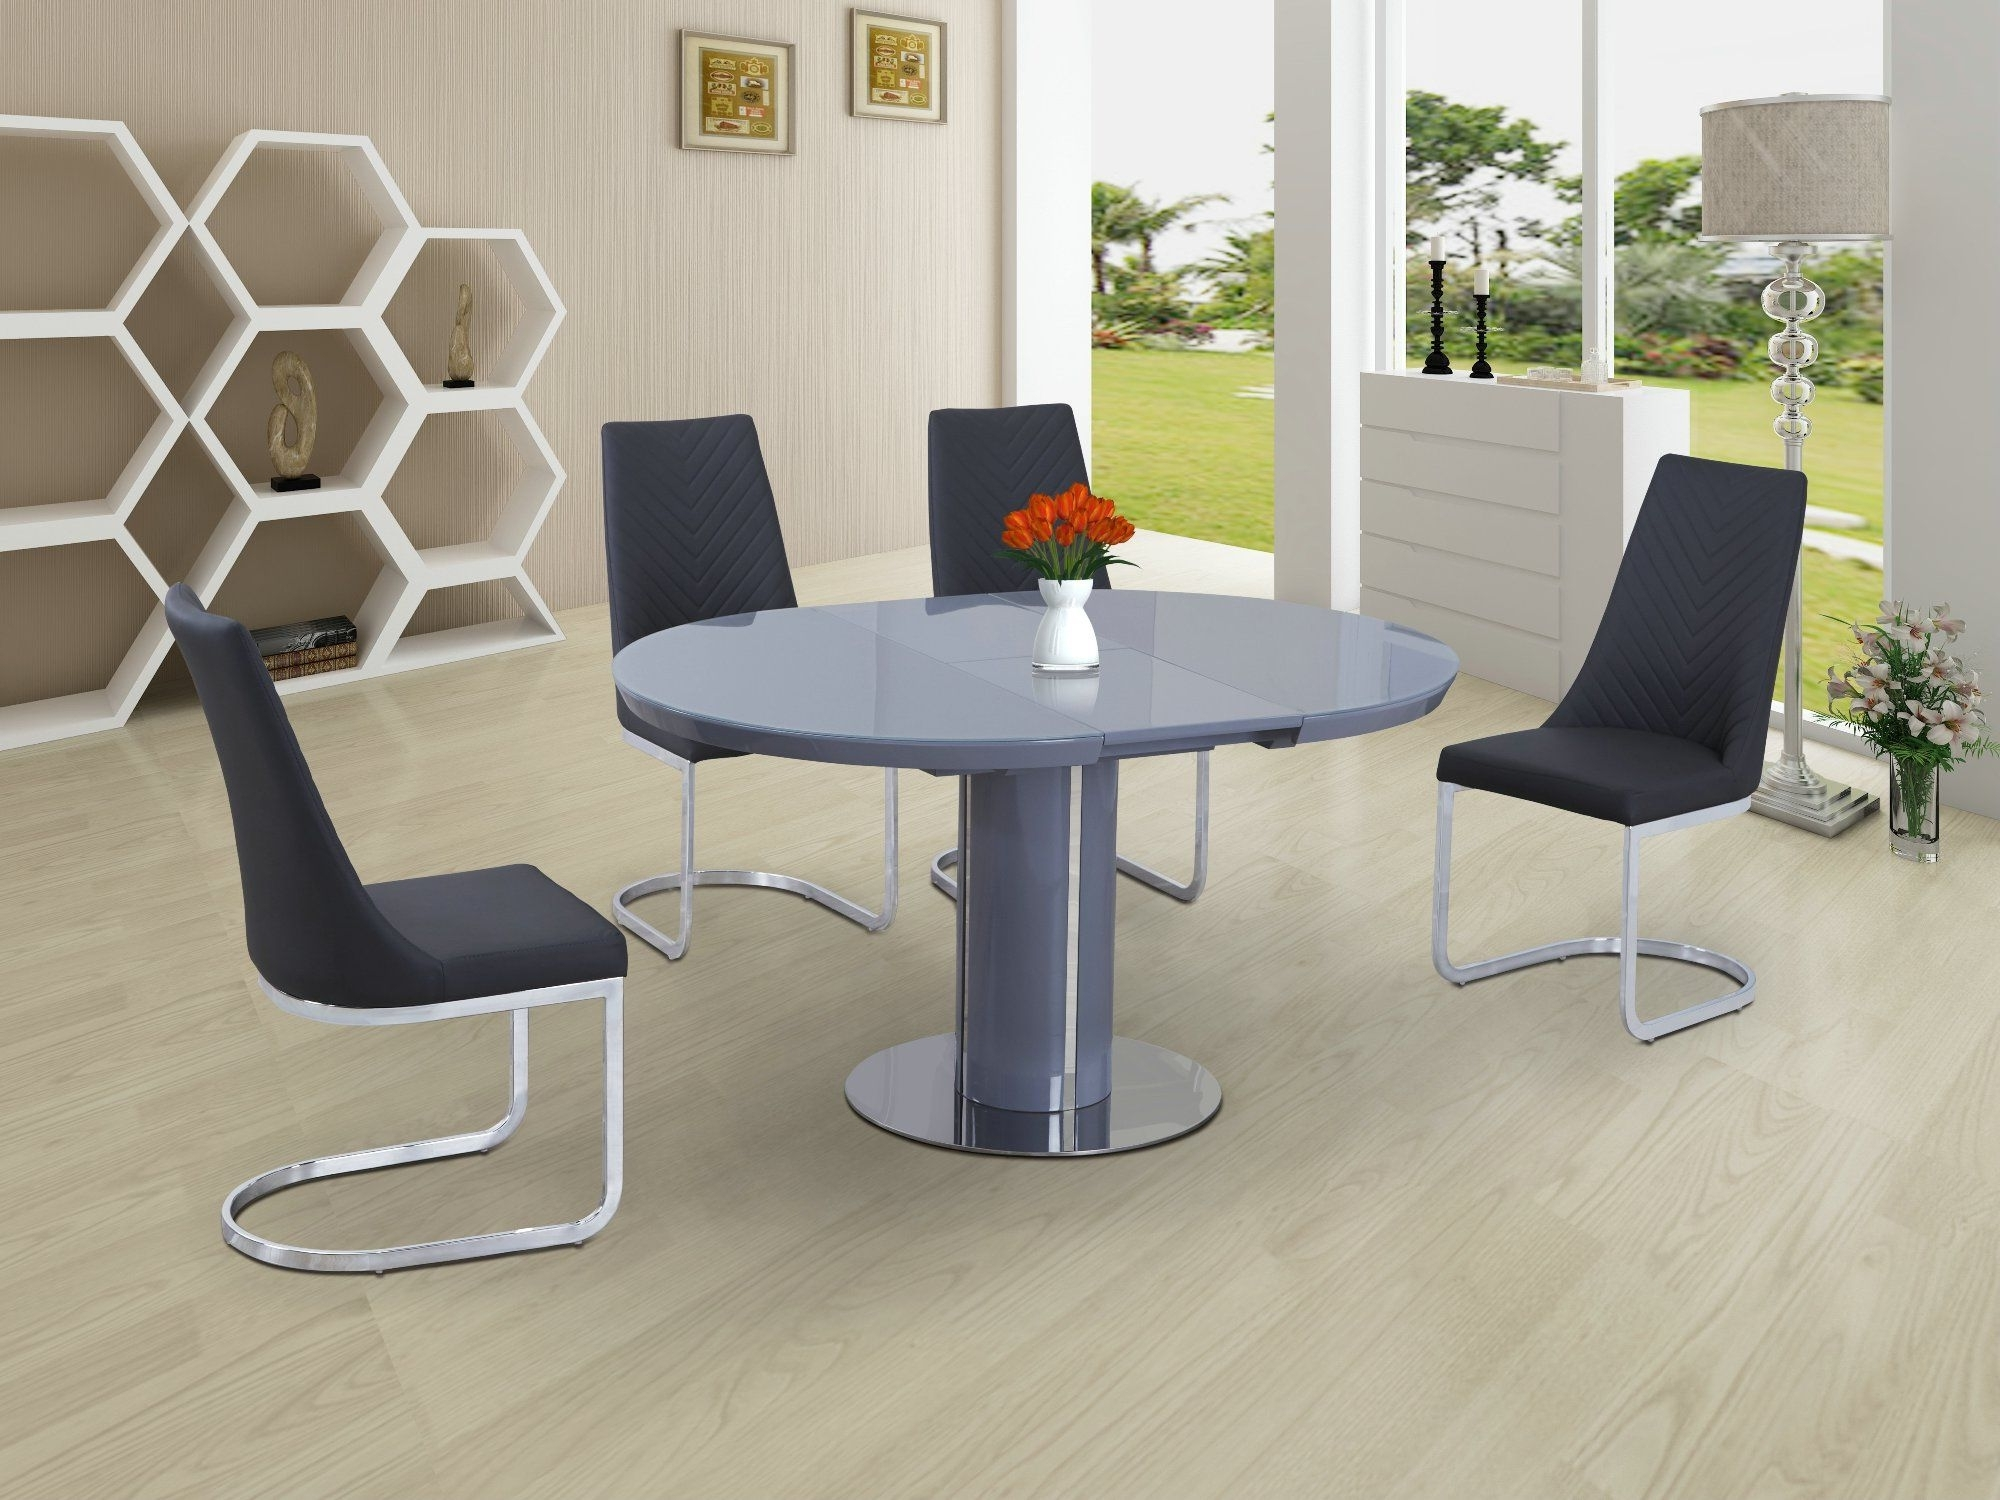 Most Current Extended Round Dining Tables In Eclipse Round Oval Gloss & Glass Extending 110 To 145 Cm Dining (View 2 of 25)